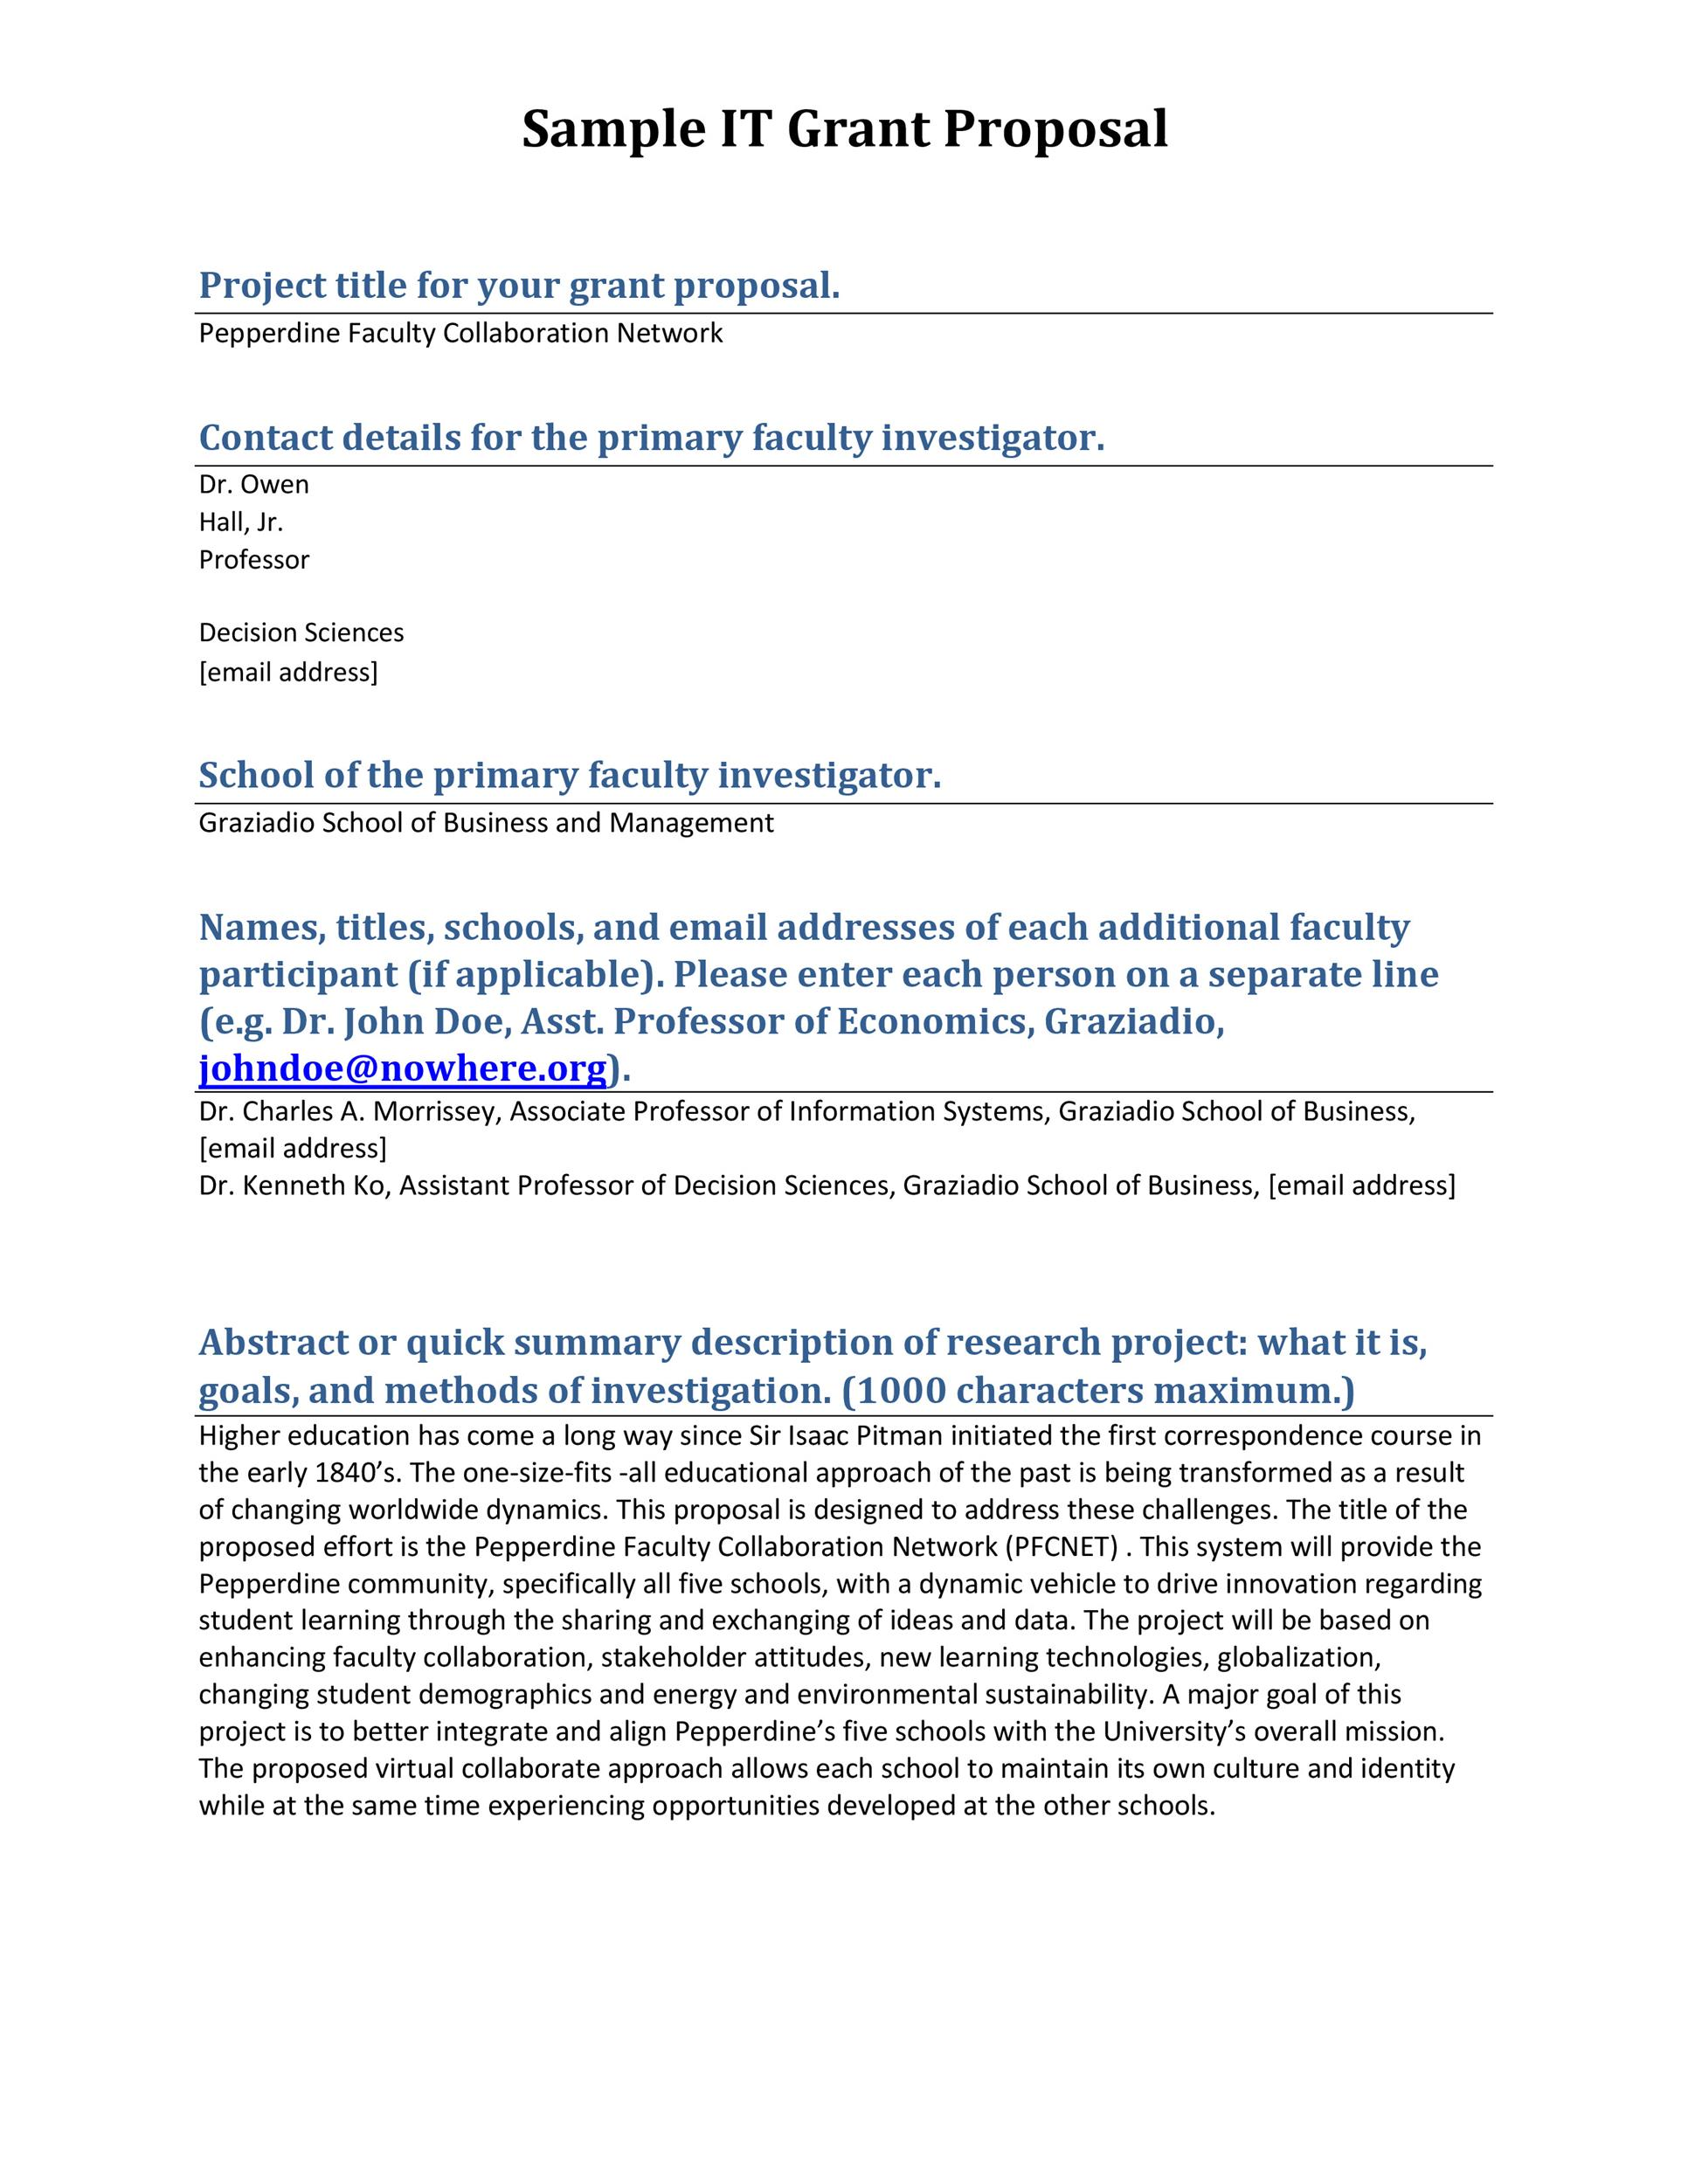 kurzwellii educational systems sample grant proposal use this - business proposal cover letter